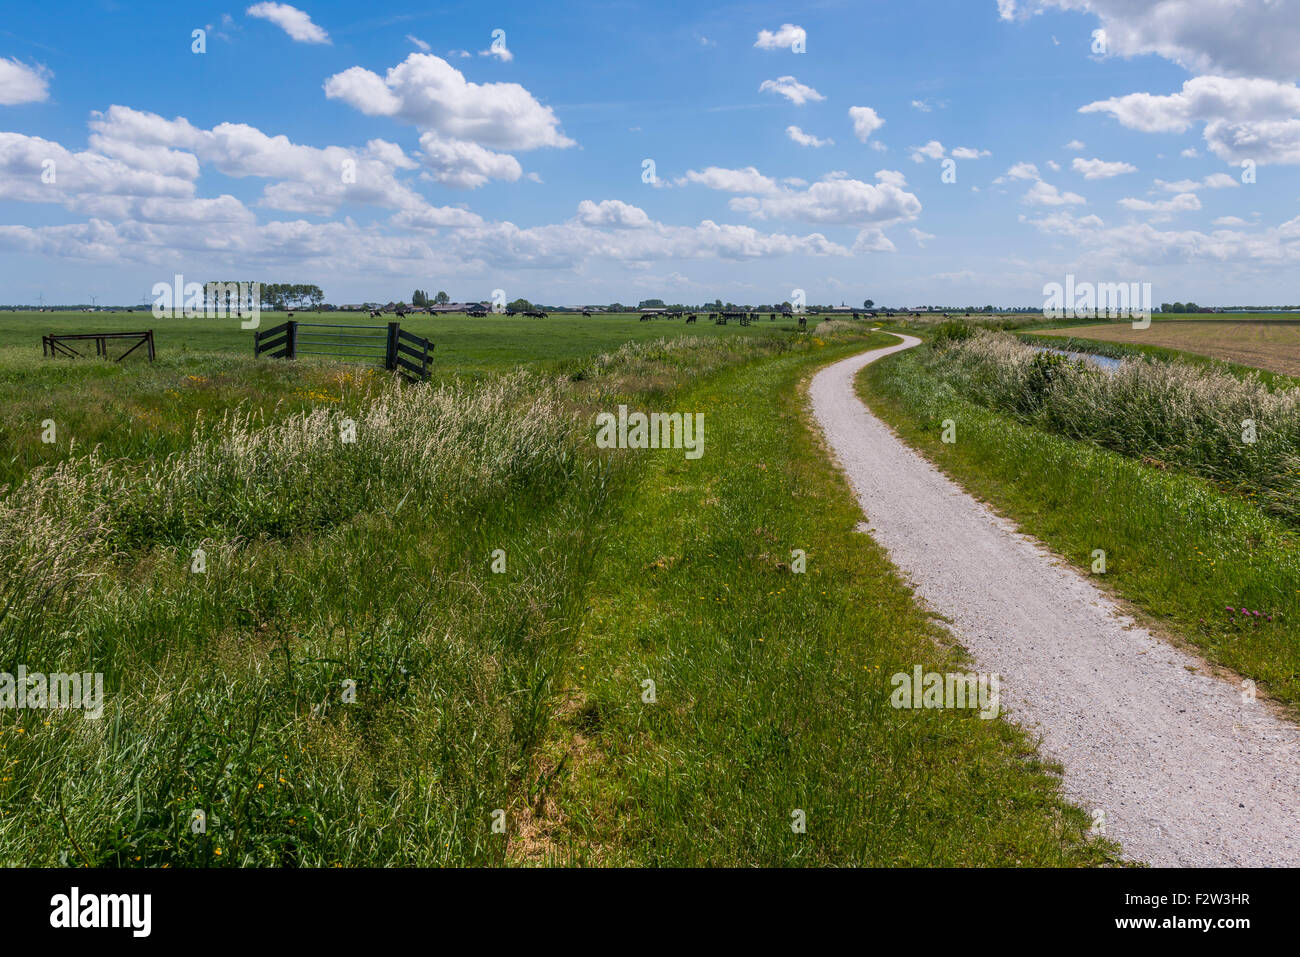 Cycling Path at Aarstwoud in Noord-Holland with water, ditch, meadows and cows. - Stock Image